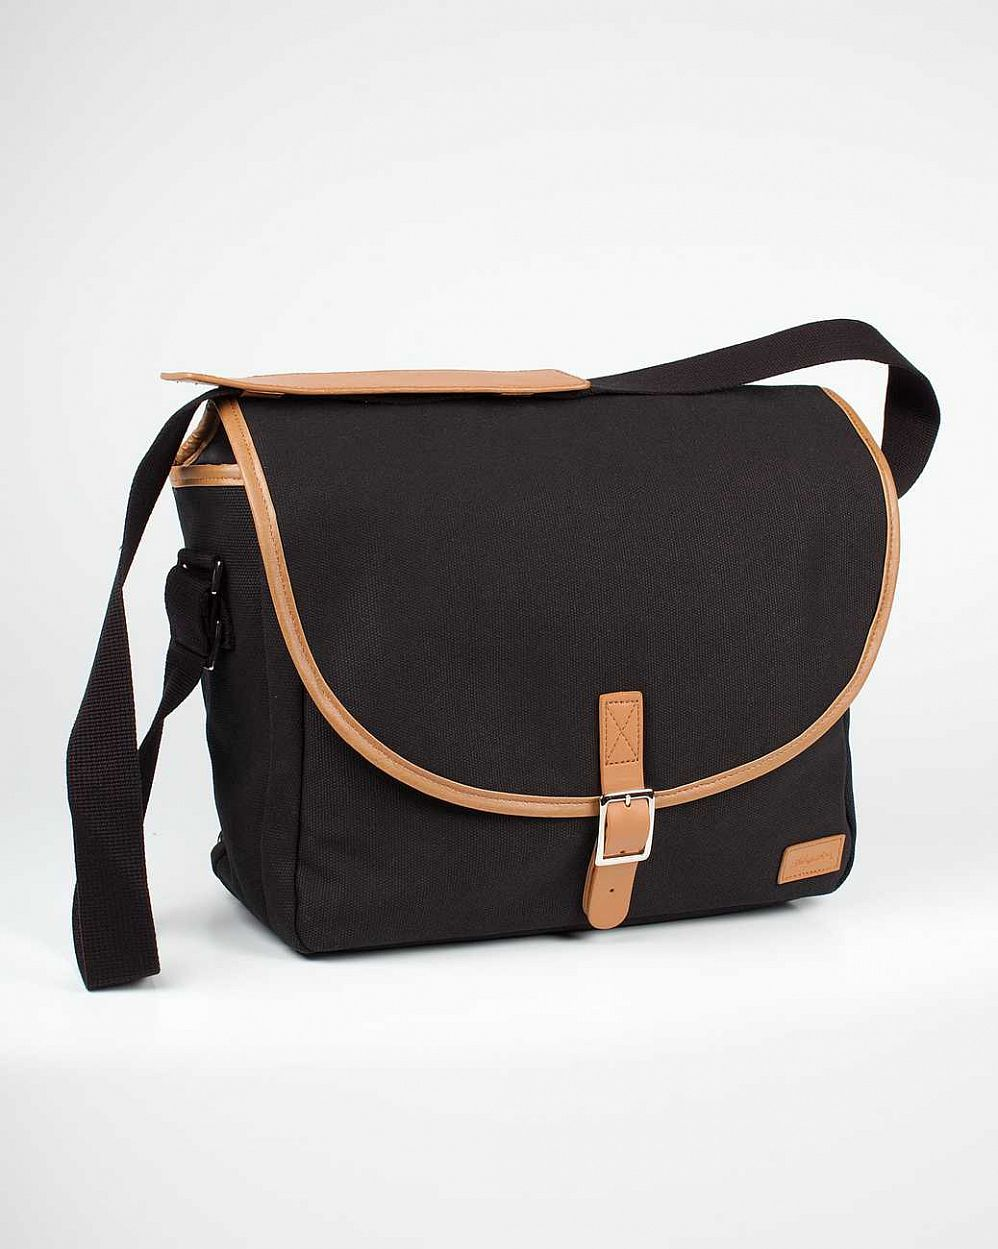 купить Сумка Submarine Haversack Canvas Leather Black Tan в Москве